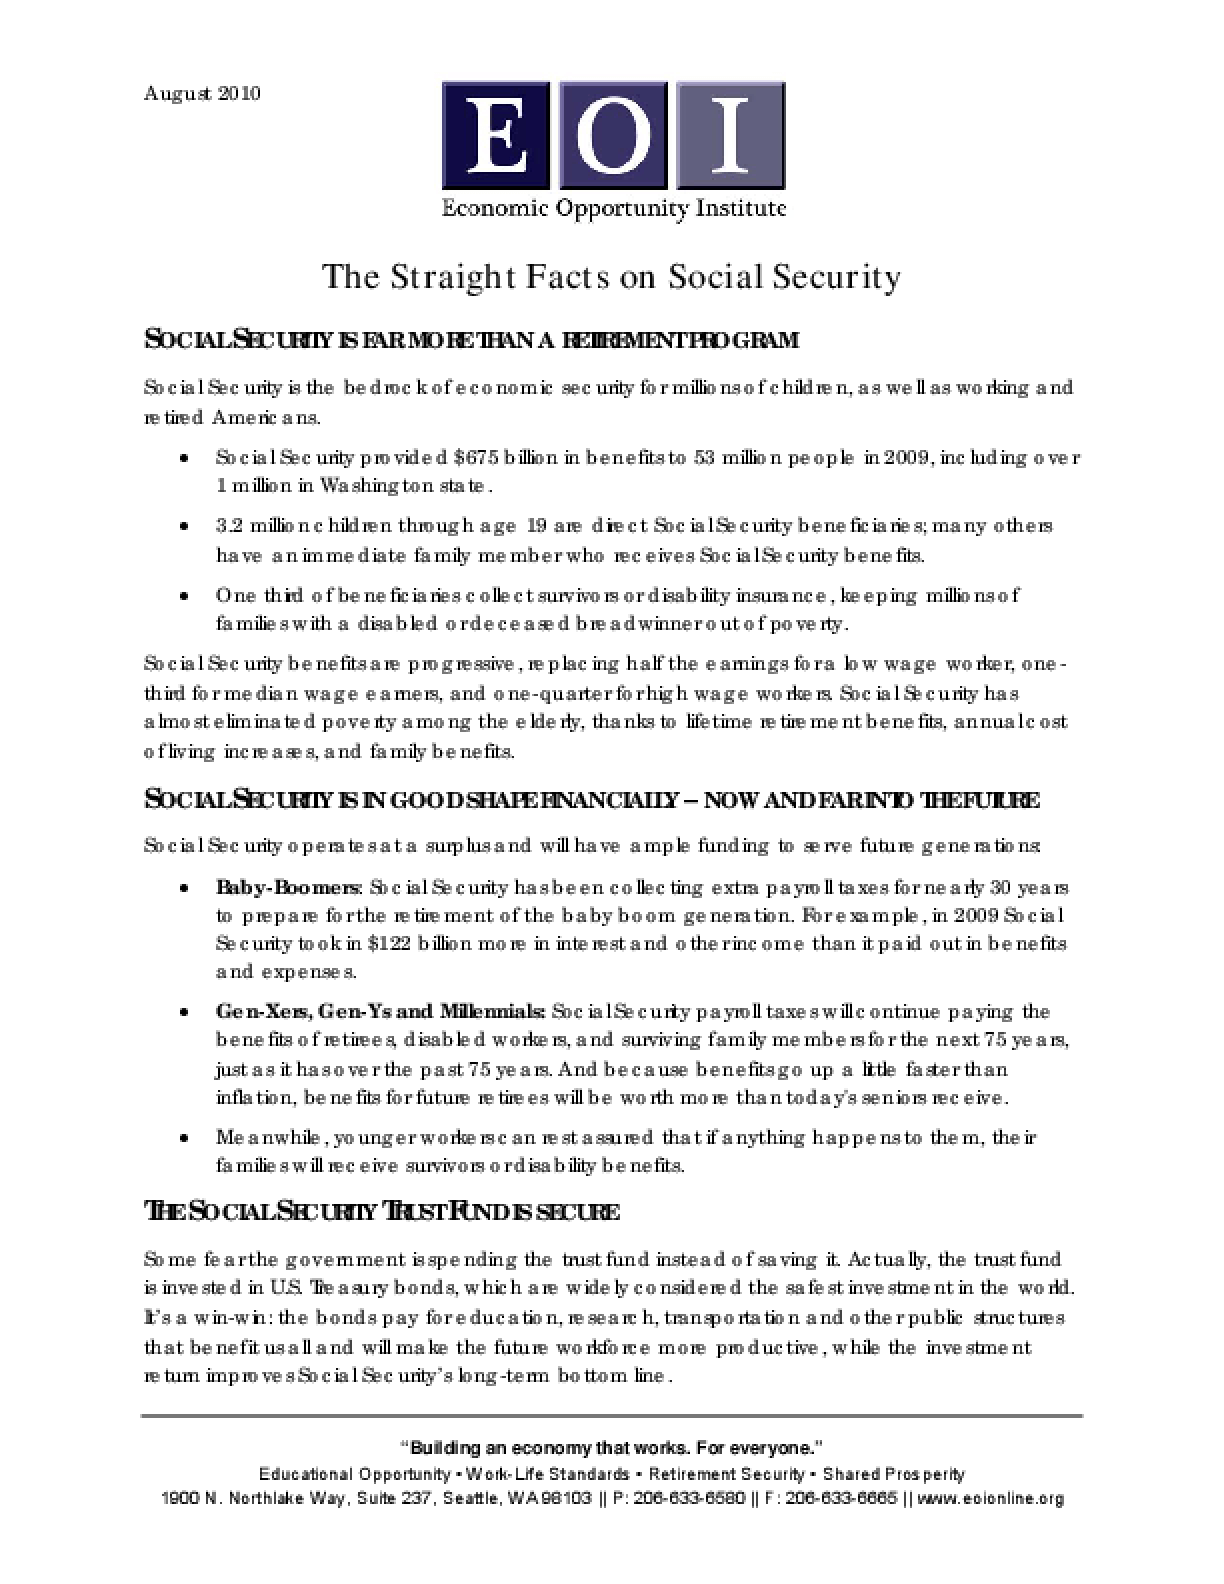 The Straight Facts on Social Security